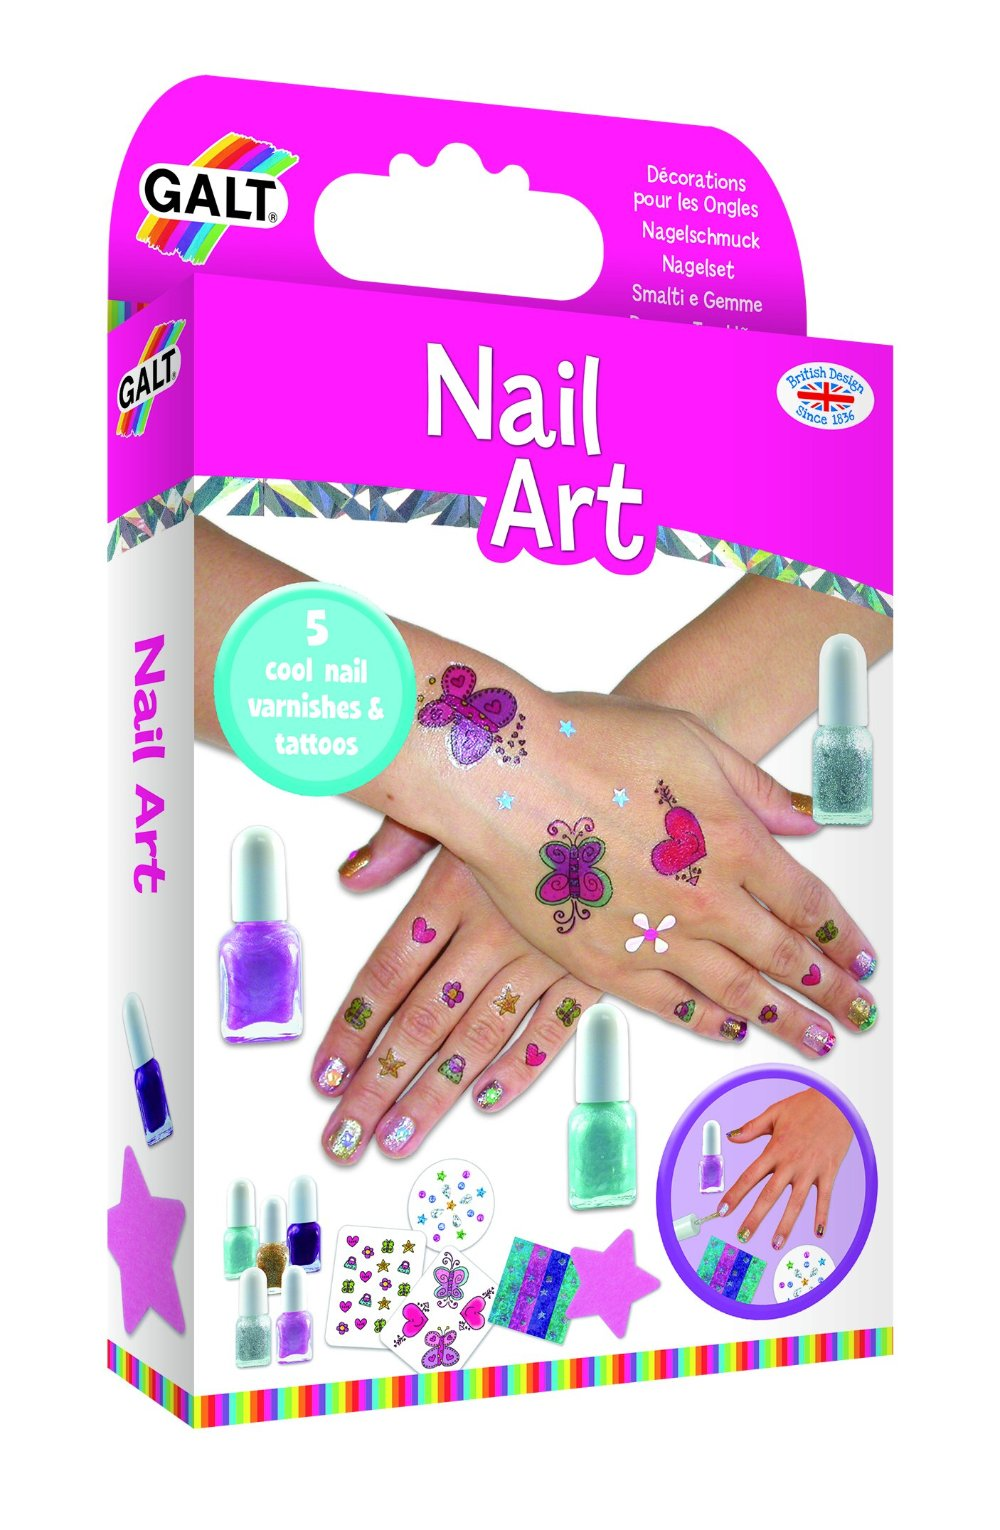 Nail Art - The Tiny Toy Store